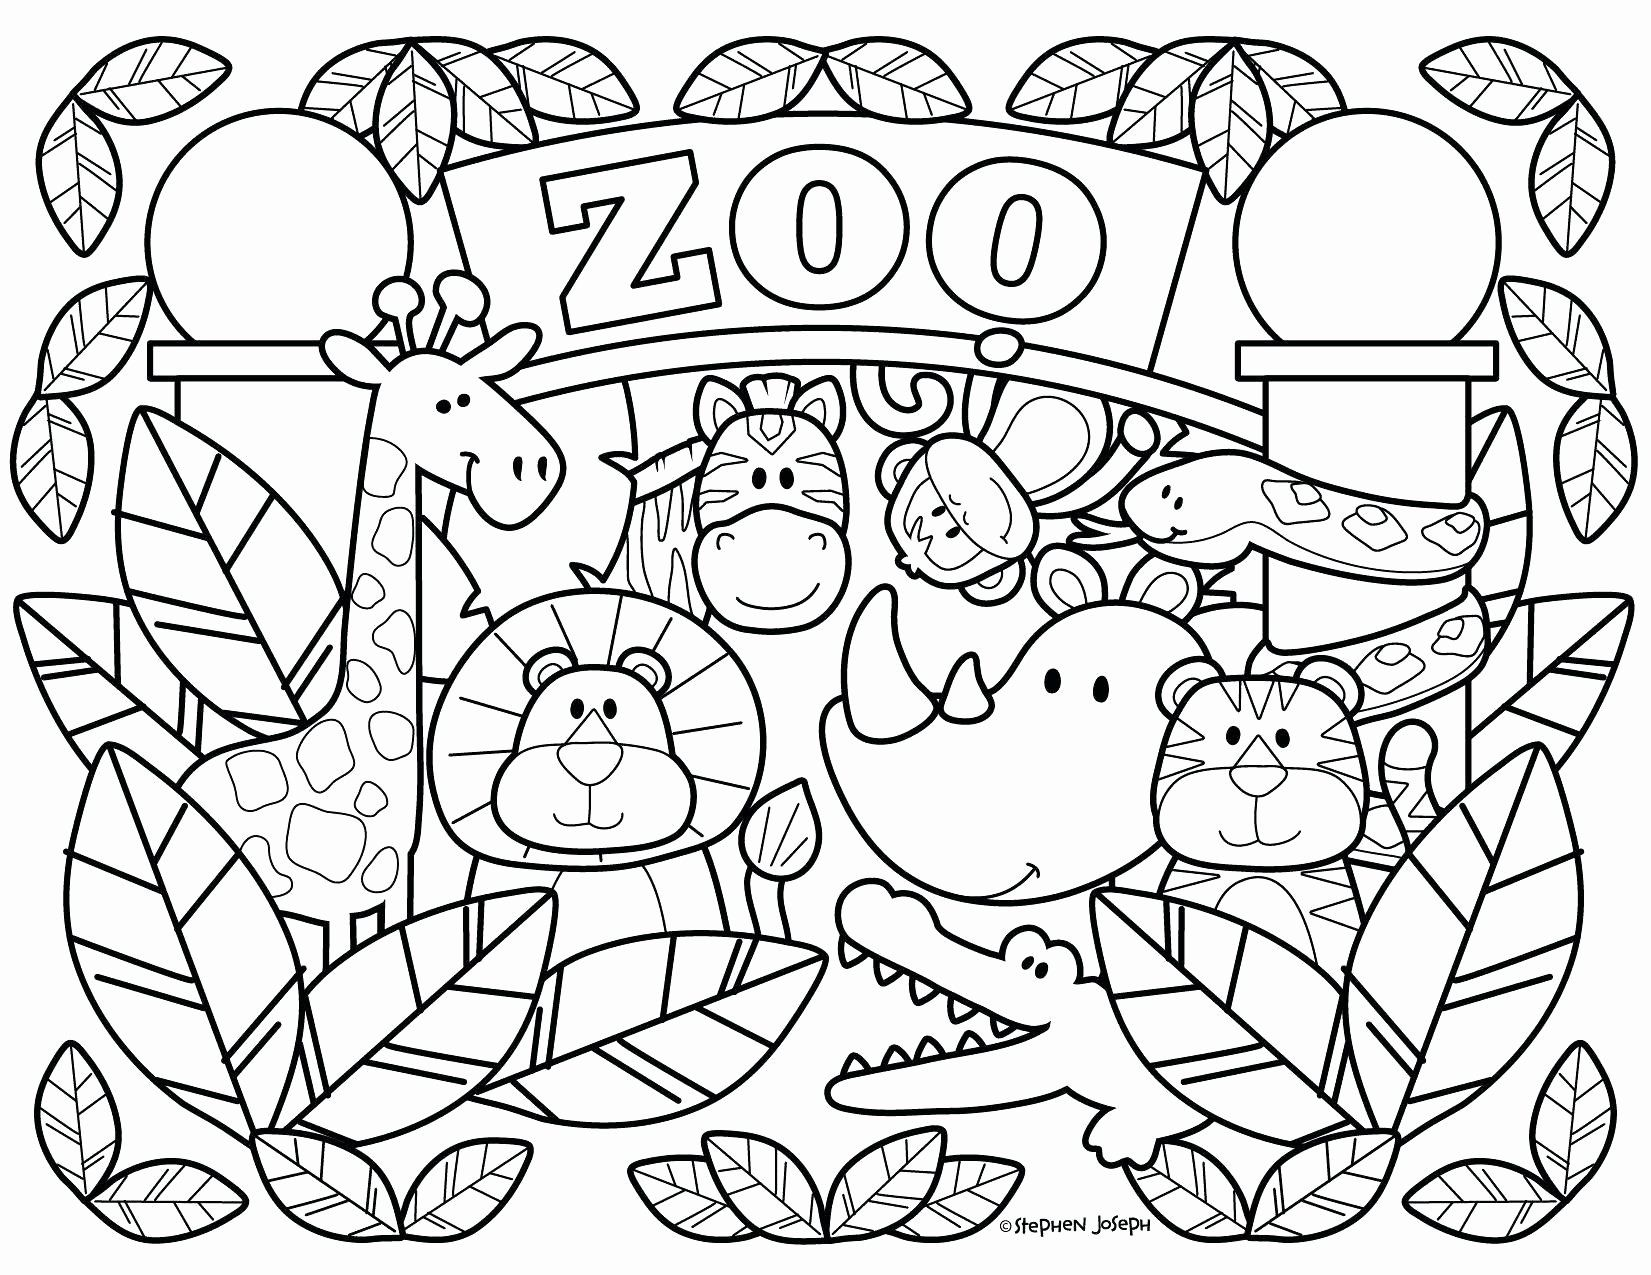 Coloring Pages Zoo Animals Preschool In 2020 Zoo Animal Coloring